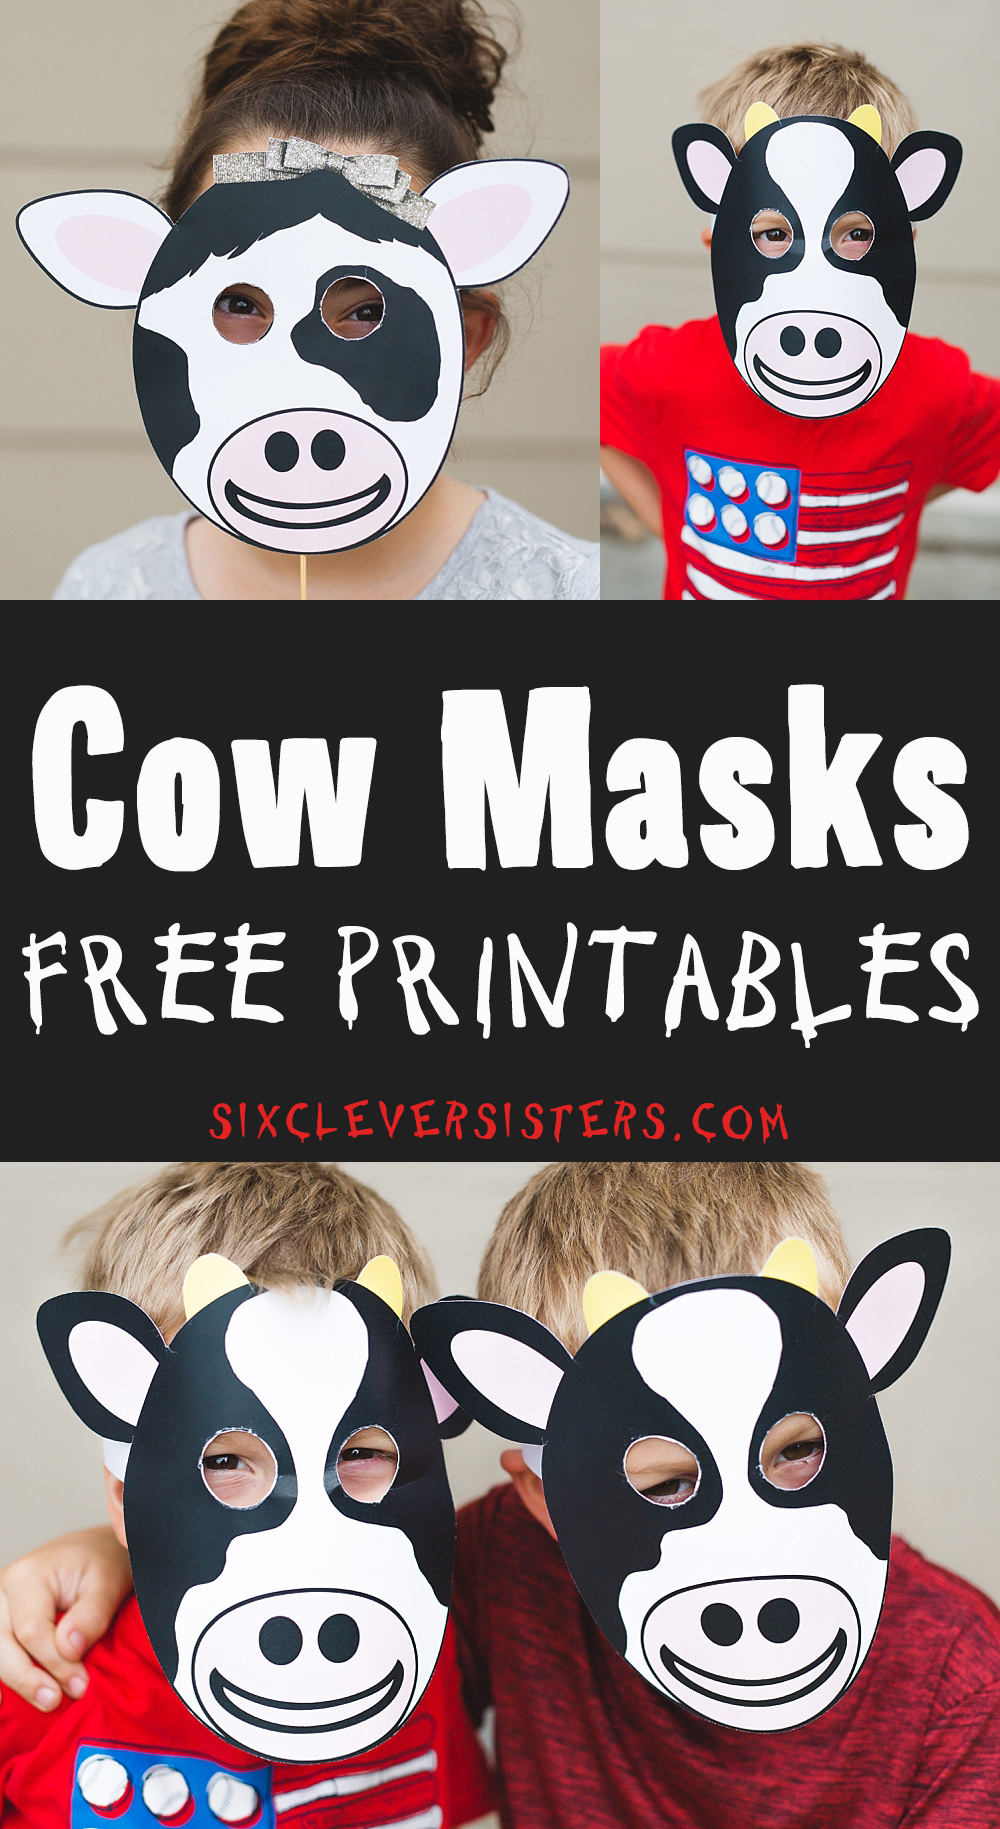 graphic about Printable Chick Fil a Cow Costume named Chick-fil-A Cow Working day Paper Plate Cow Masks With Totally free